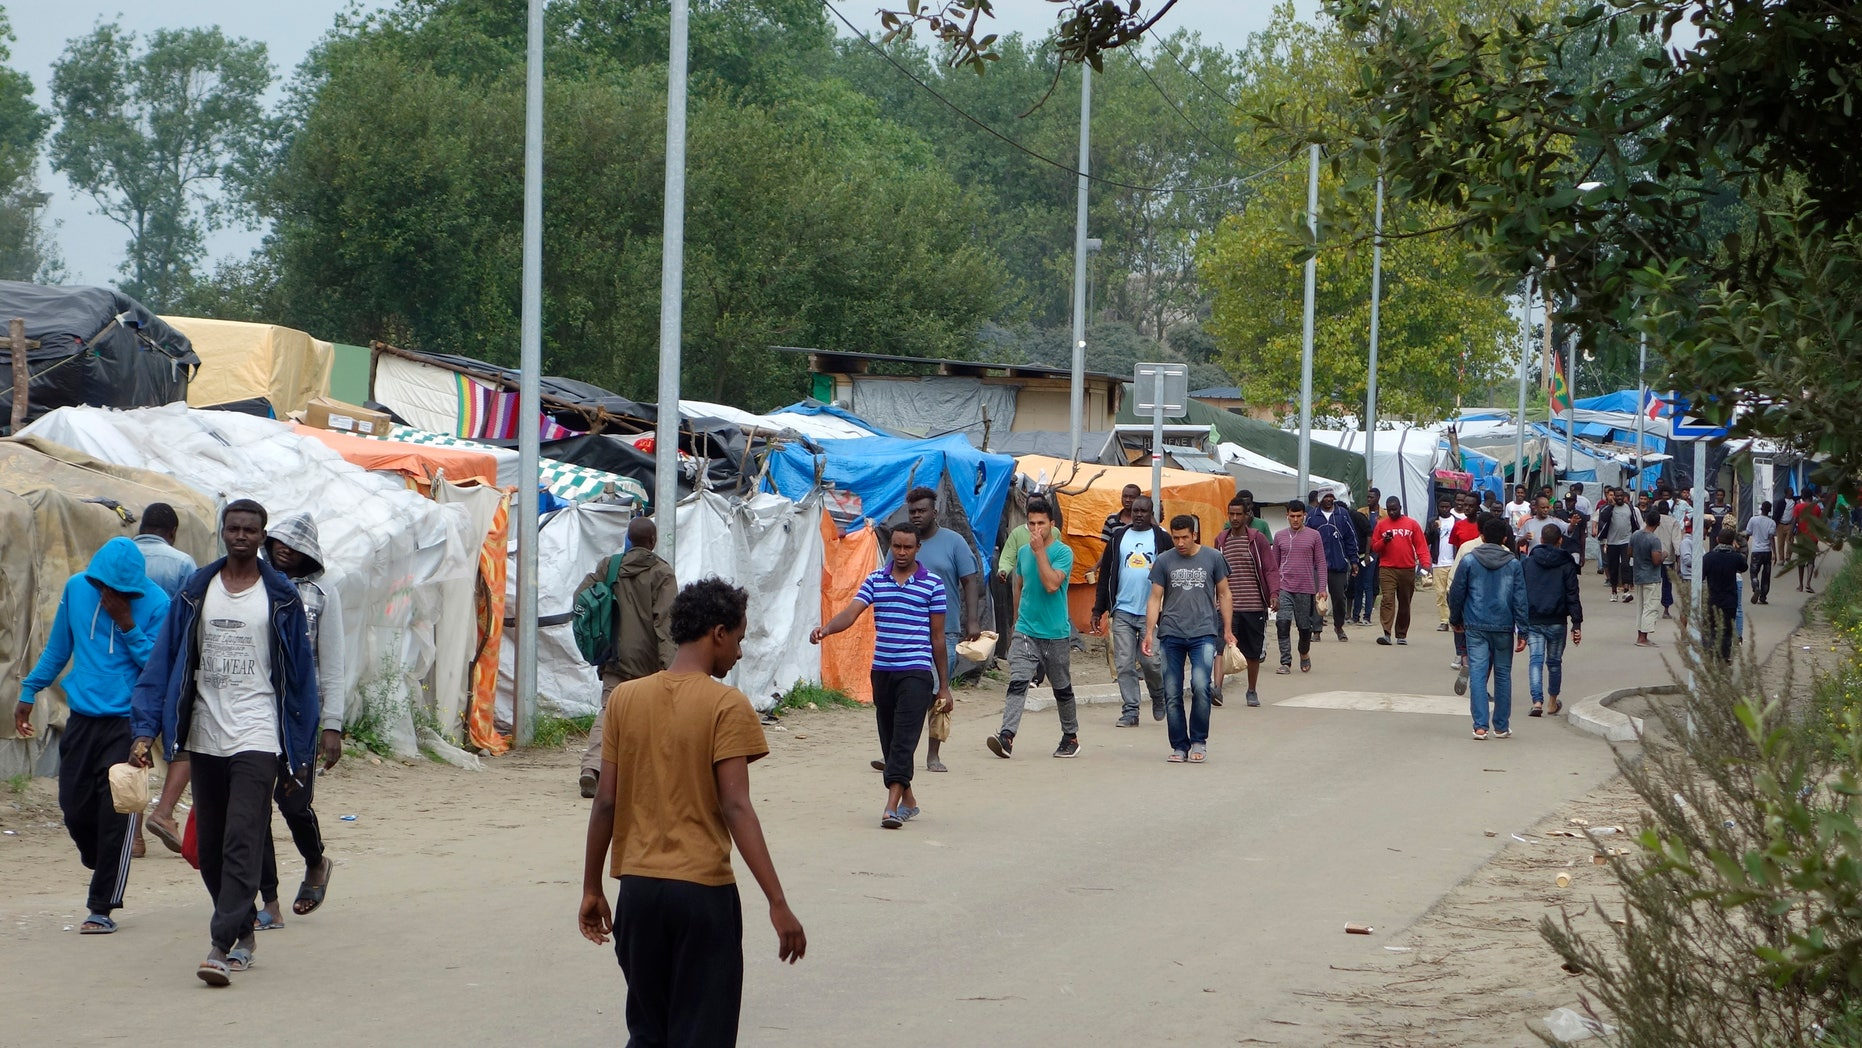 """Sept. 6, 2016: Migrants walk in the northern area of the camp called the """"Jungle"""" in Calais, France."""